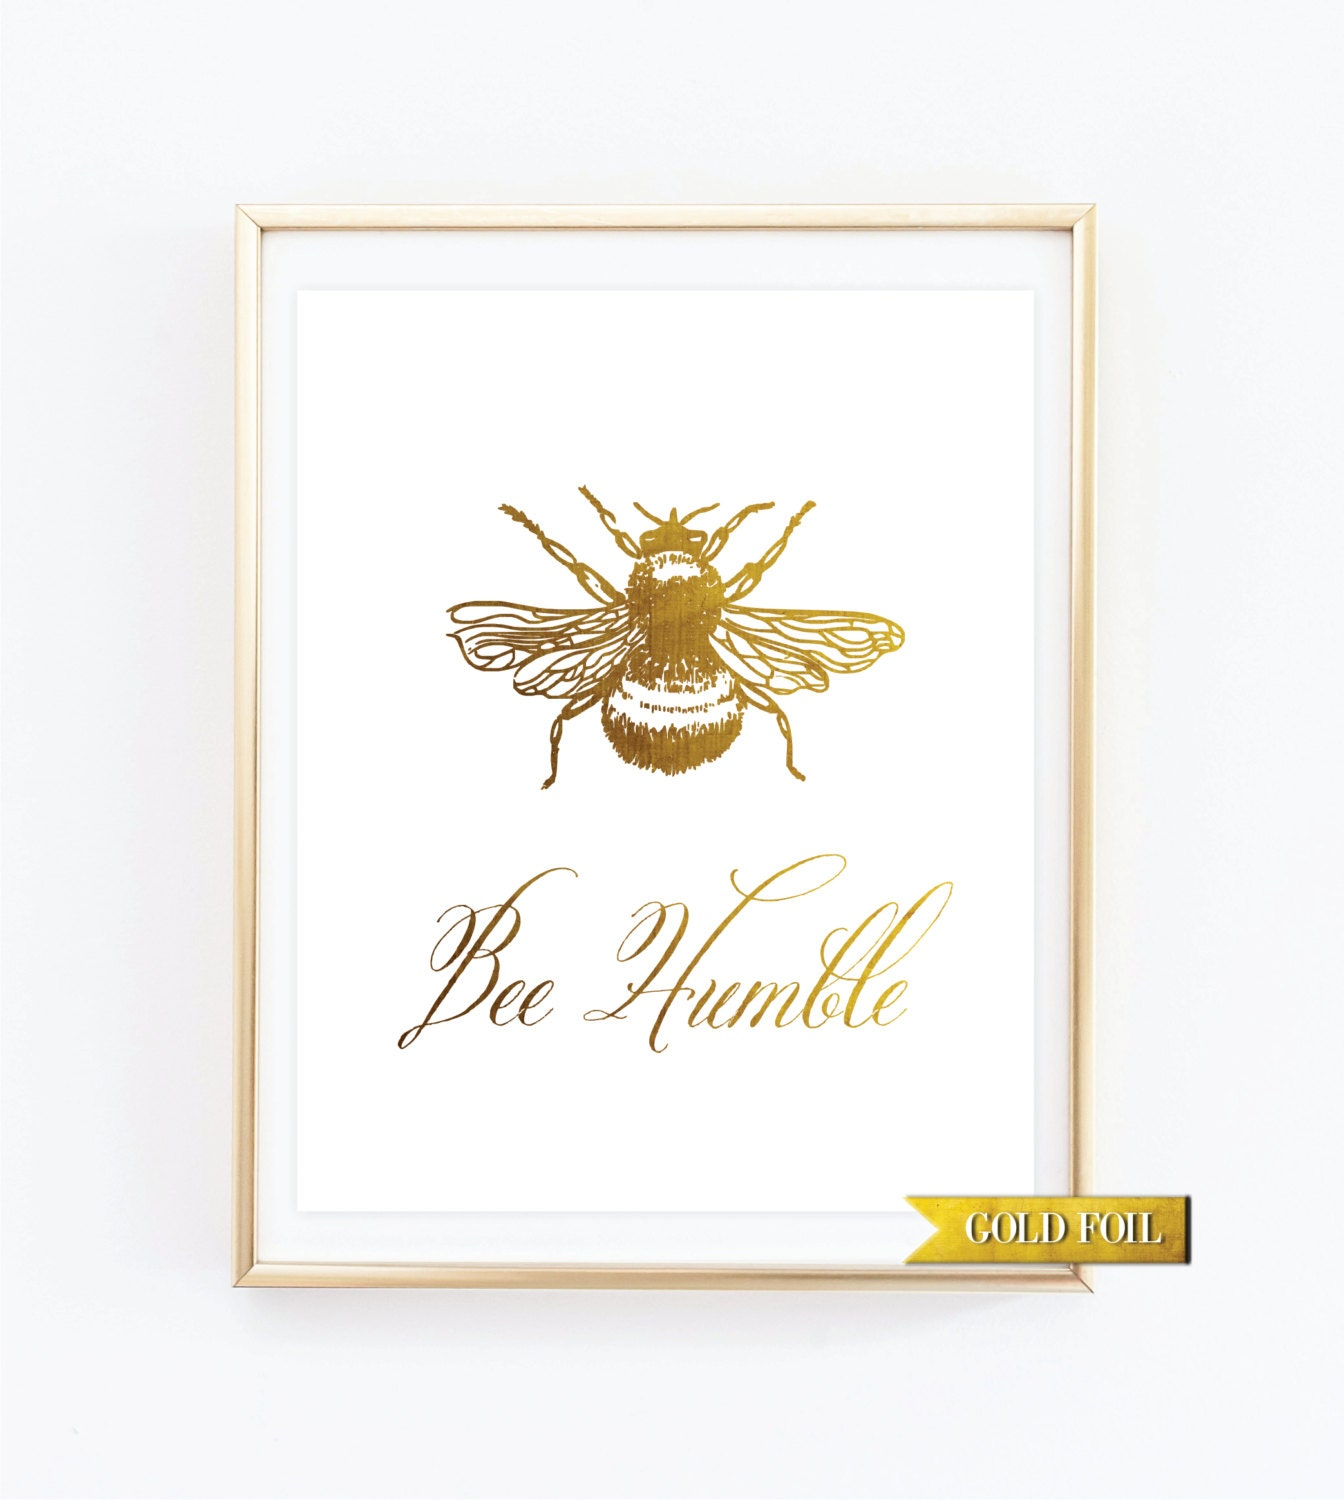 Gold R Wall Decor : Bee humble print gold nursery wall d?cor kids decor